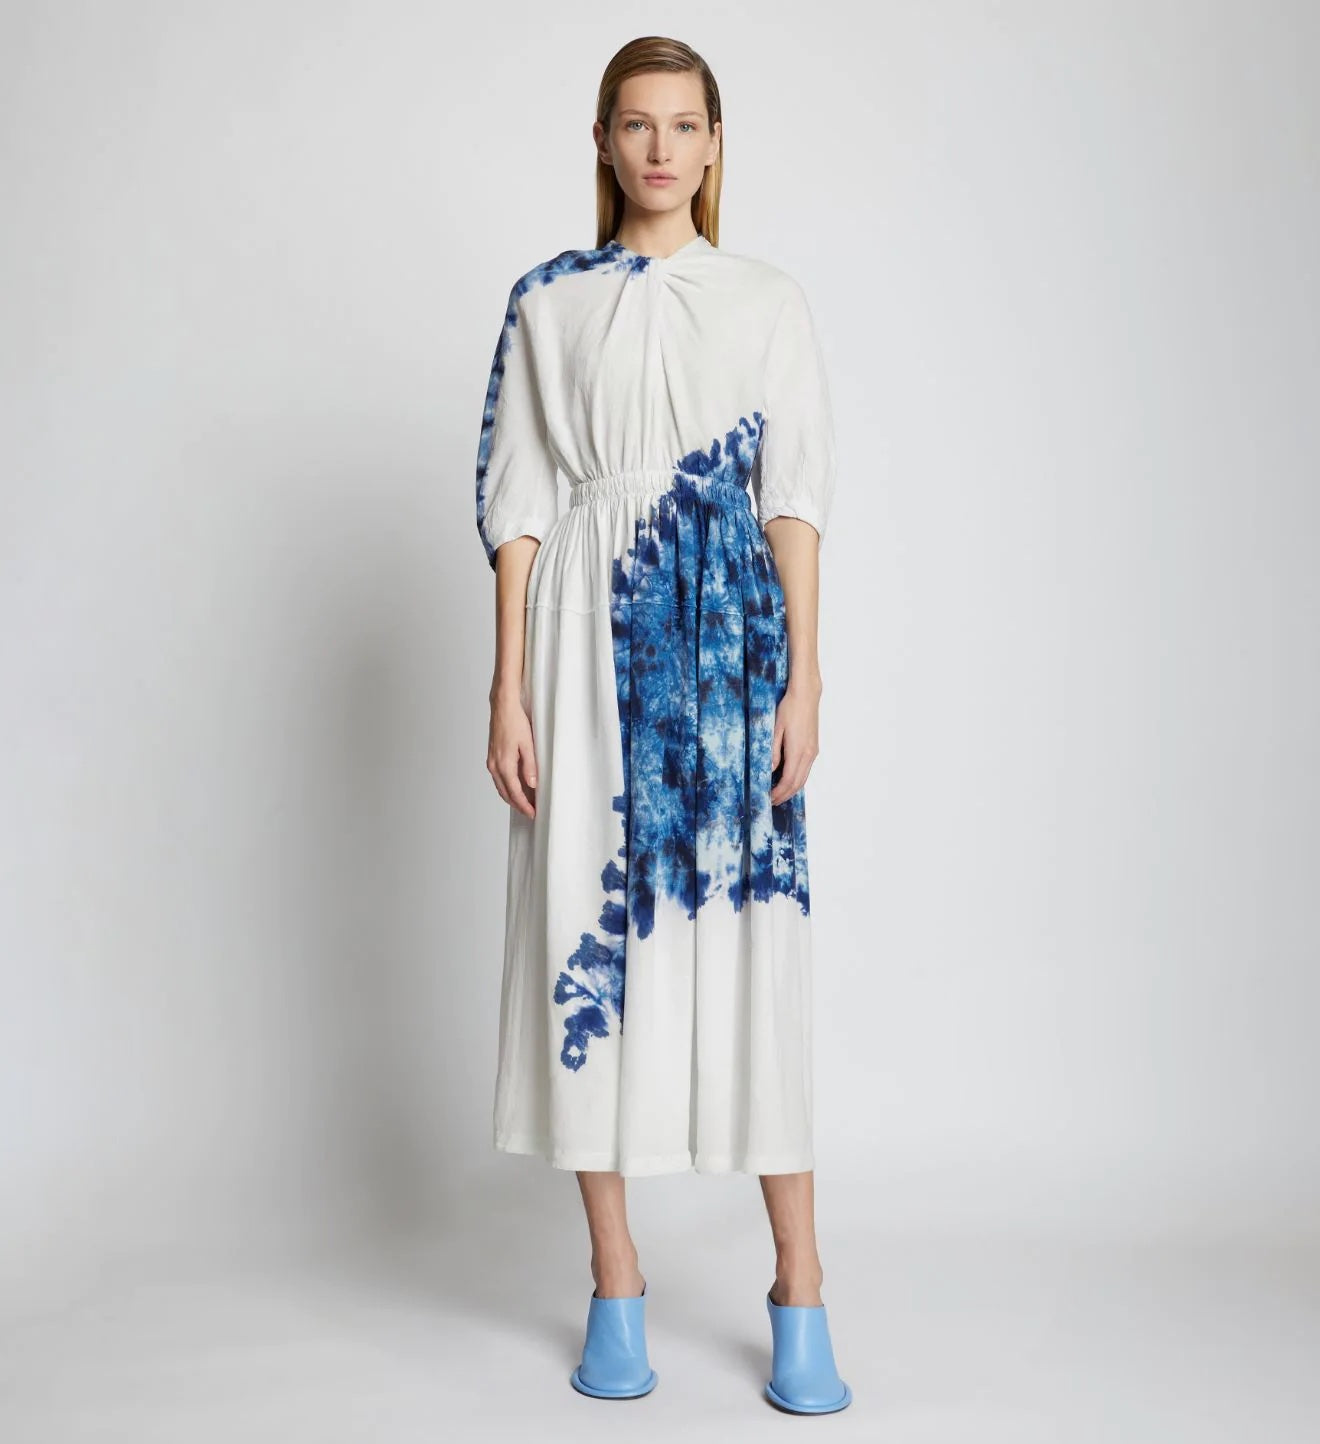 Proenza Schouler Tie Dye Linen Viscose Dress